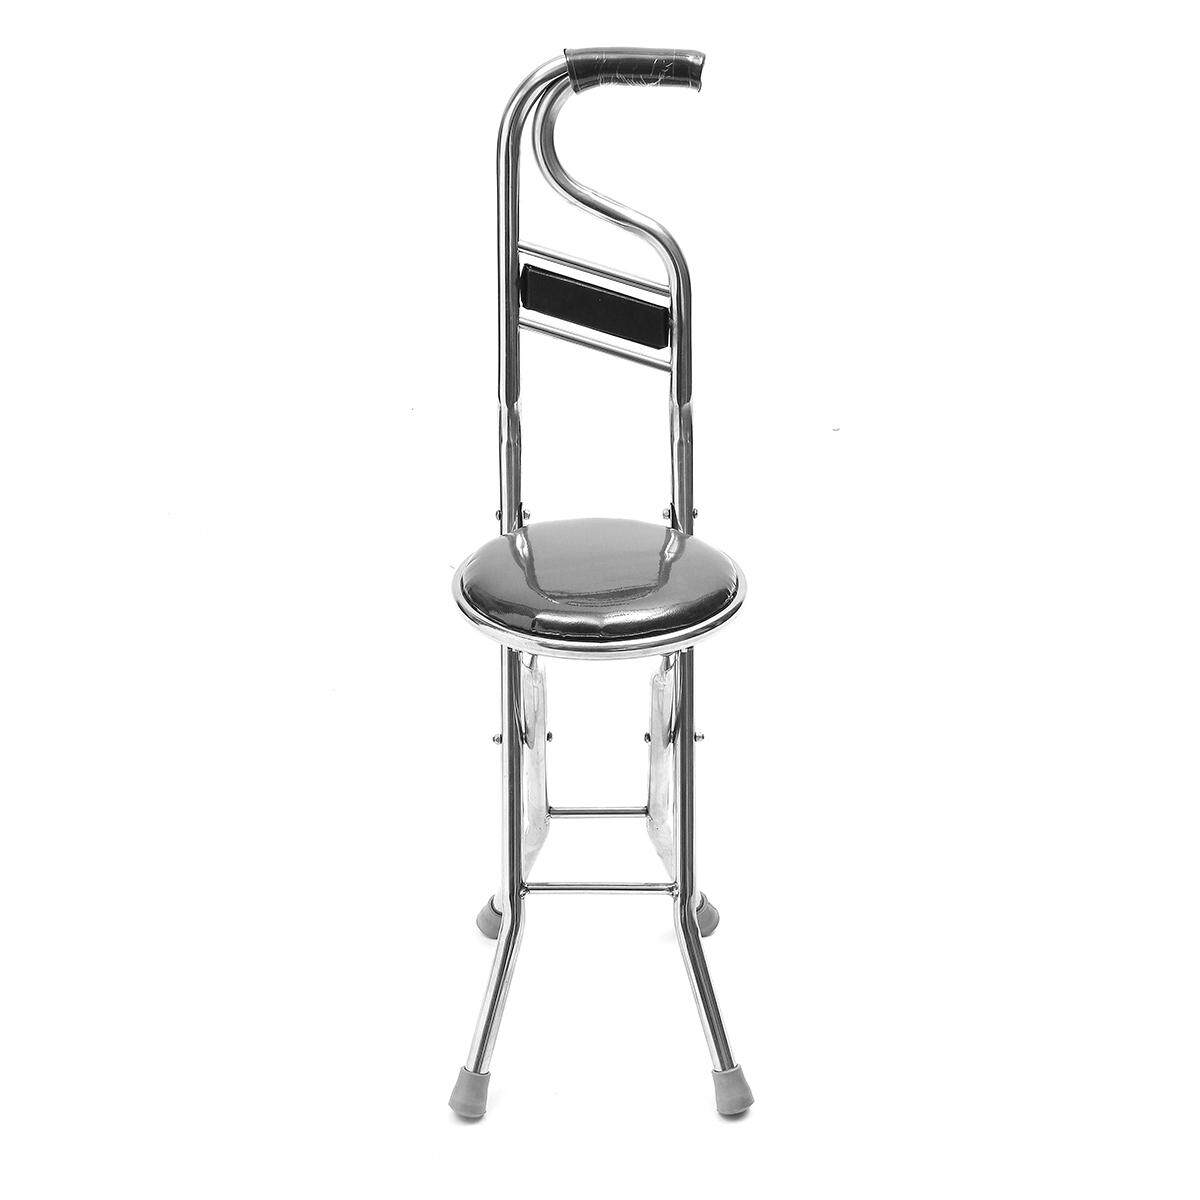 walking cane seat chairs chair with umbrella attached walmart stainless steel portable folding stick